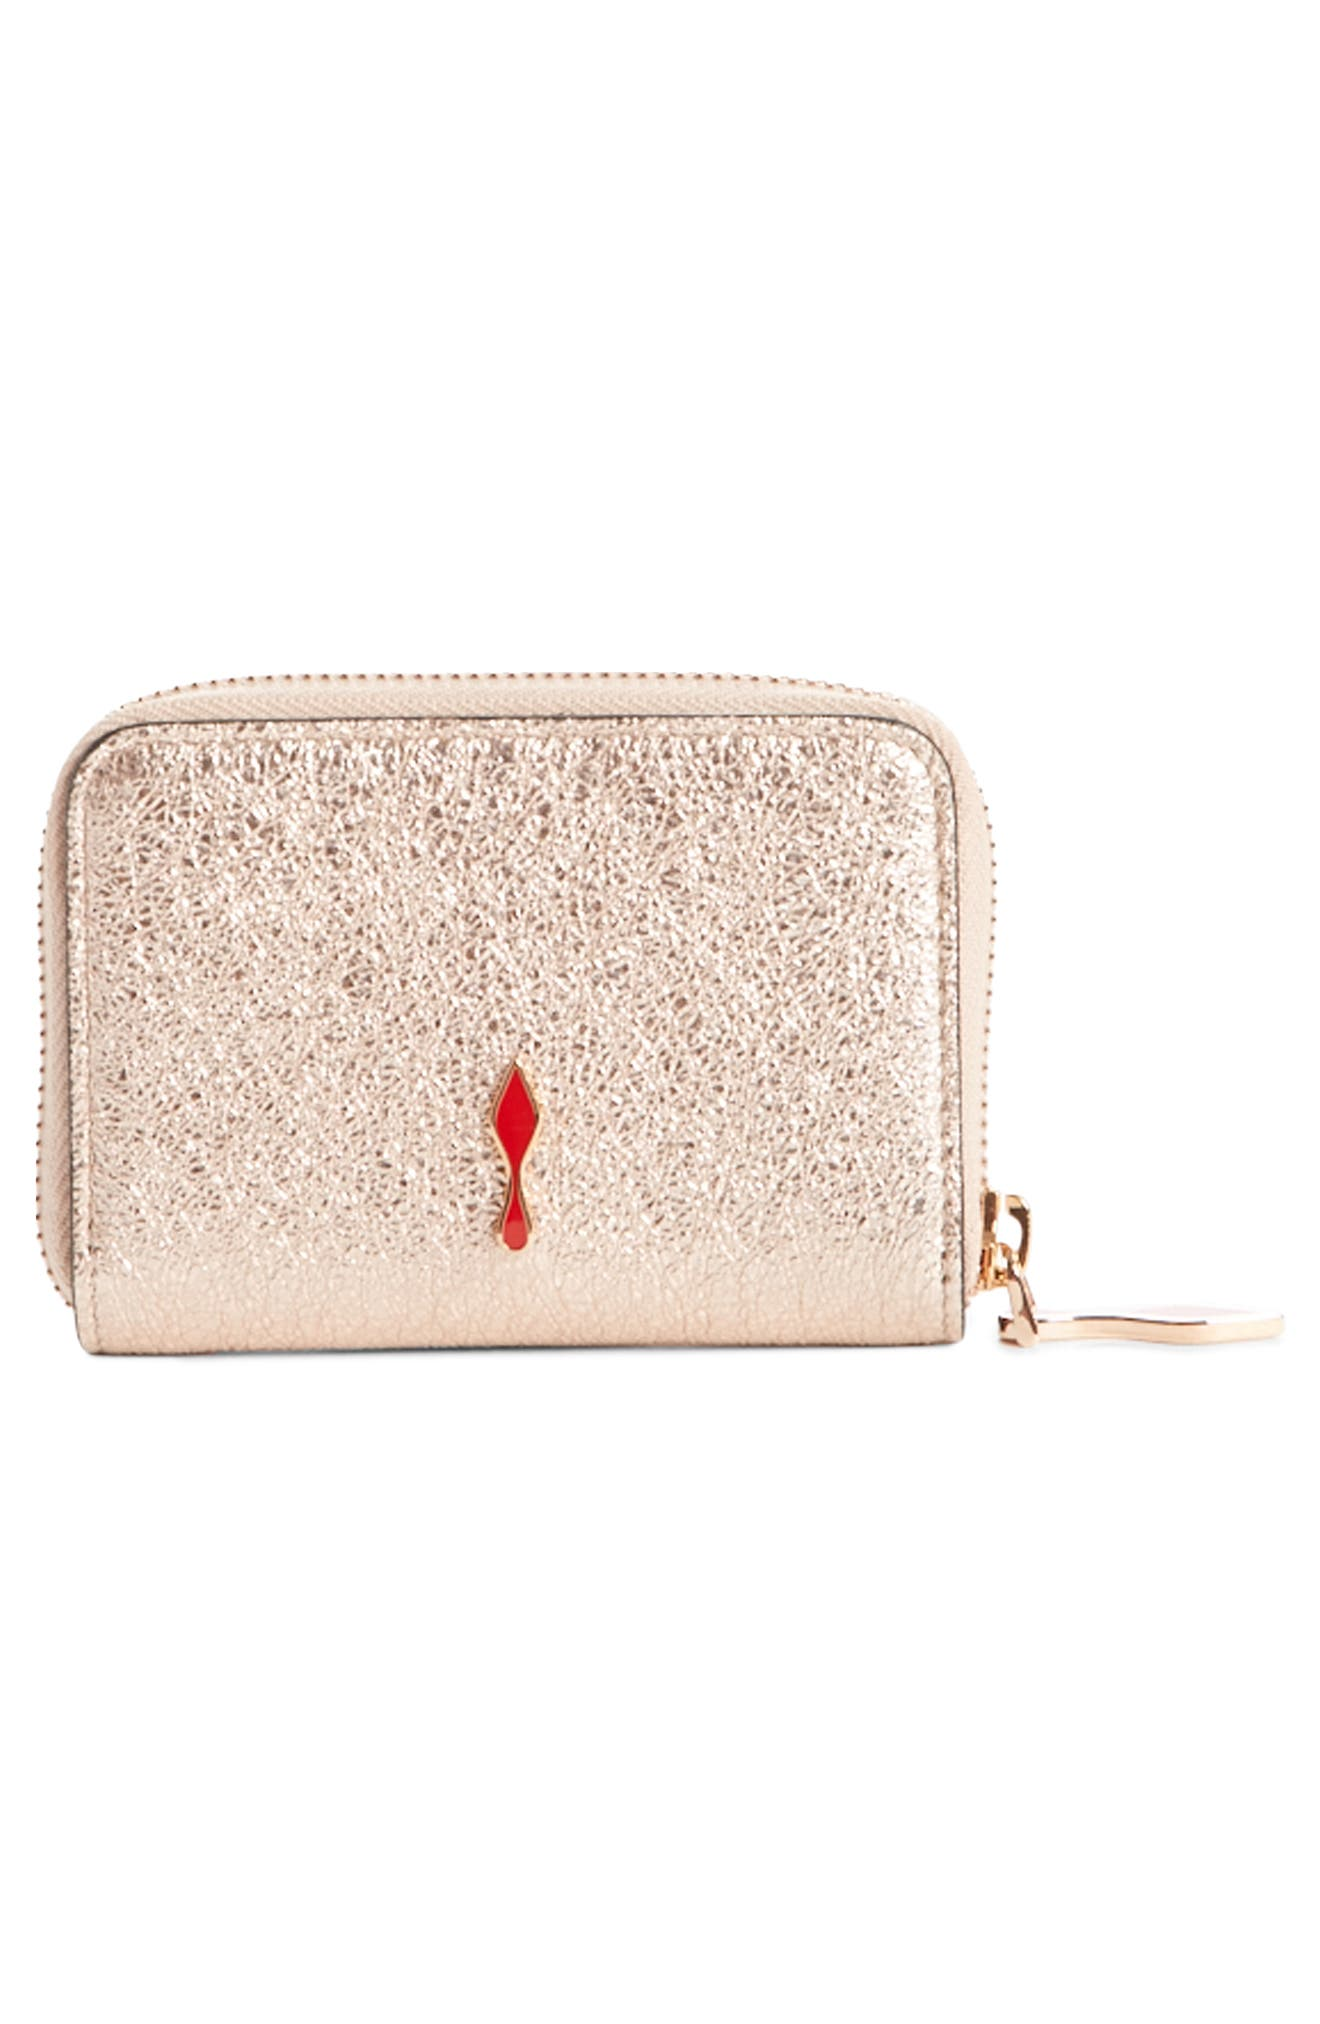 Panettone Leather Coin Purse,                             Alternate thumbnail 2, color,